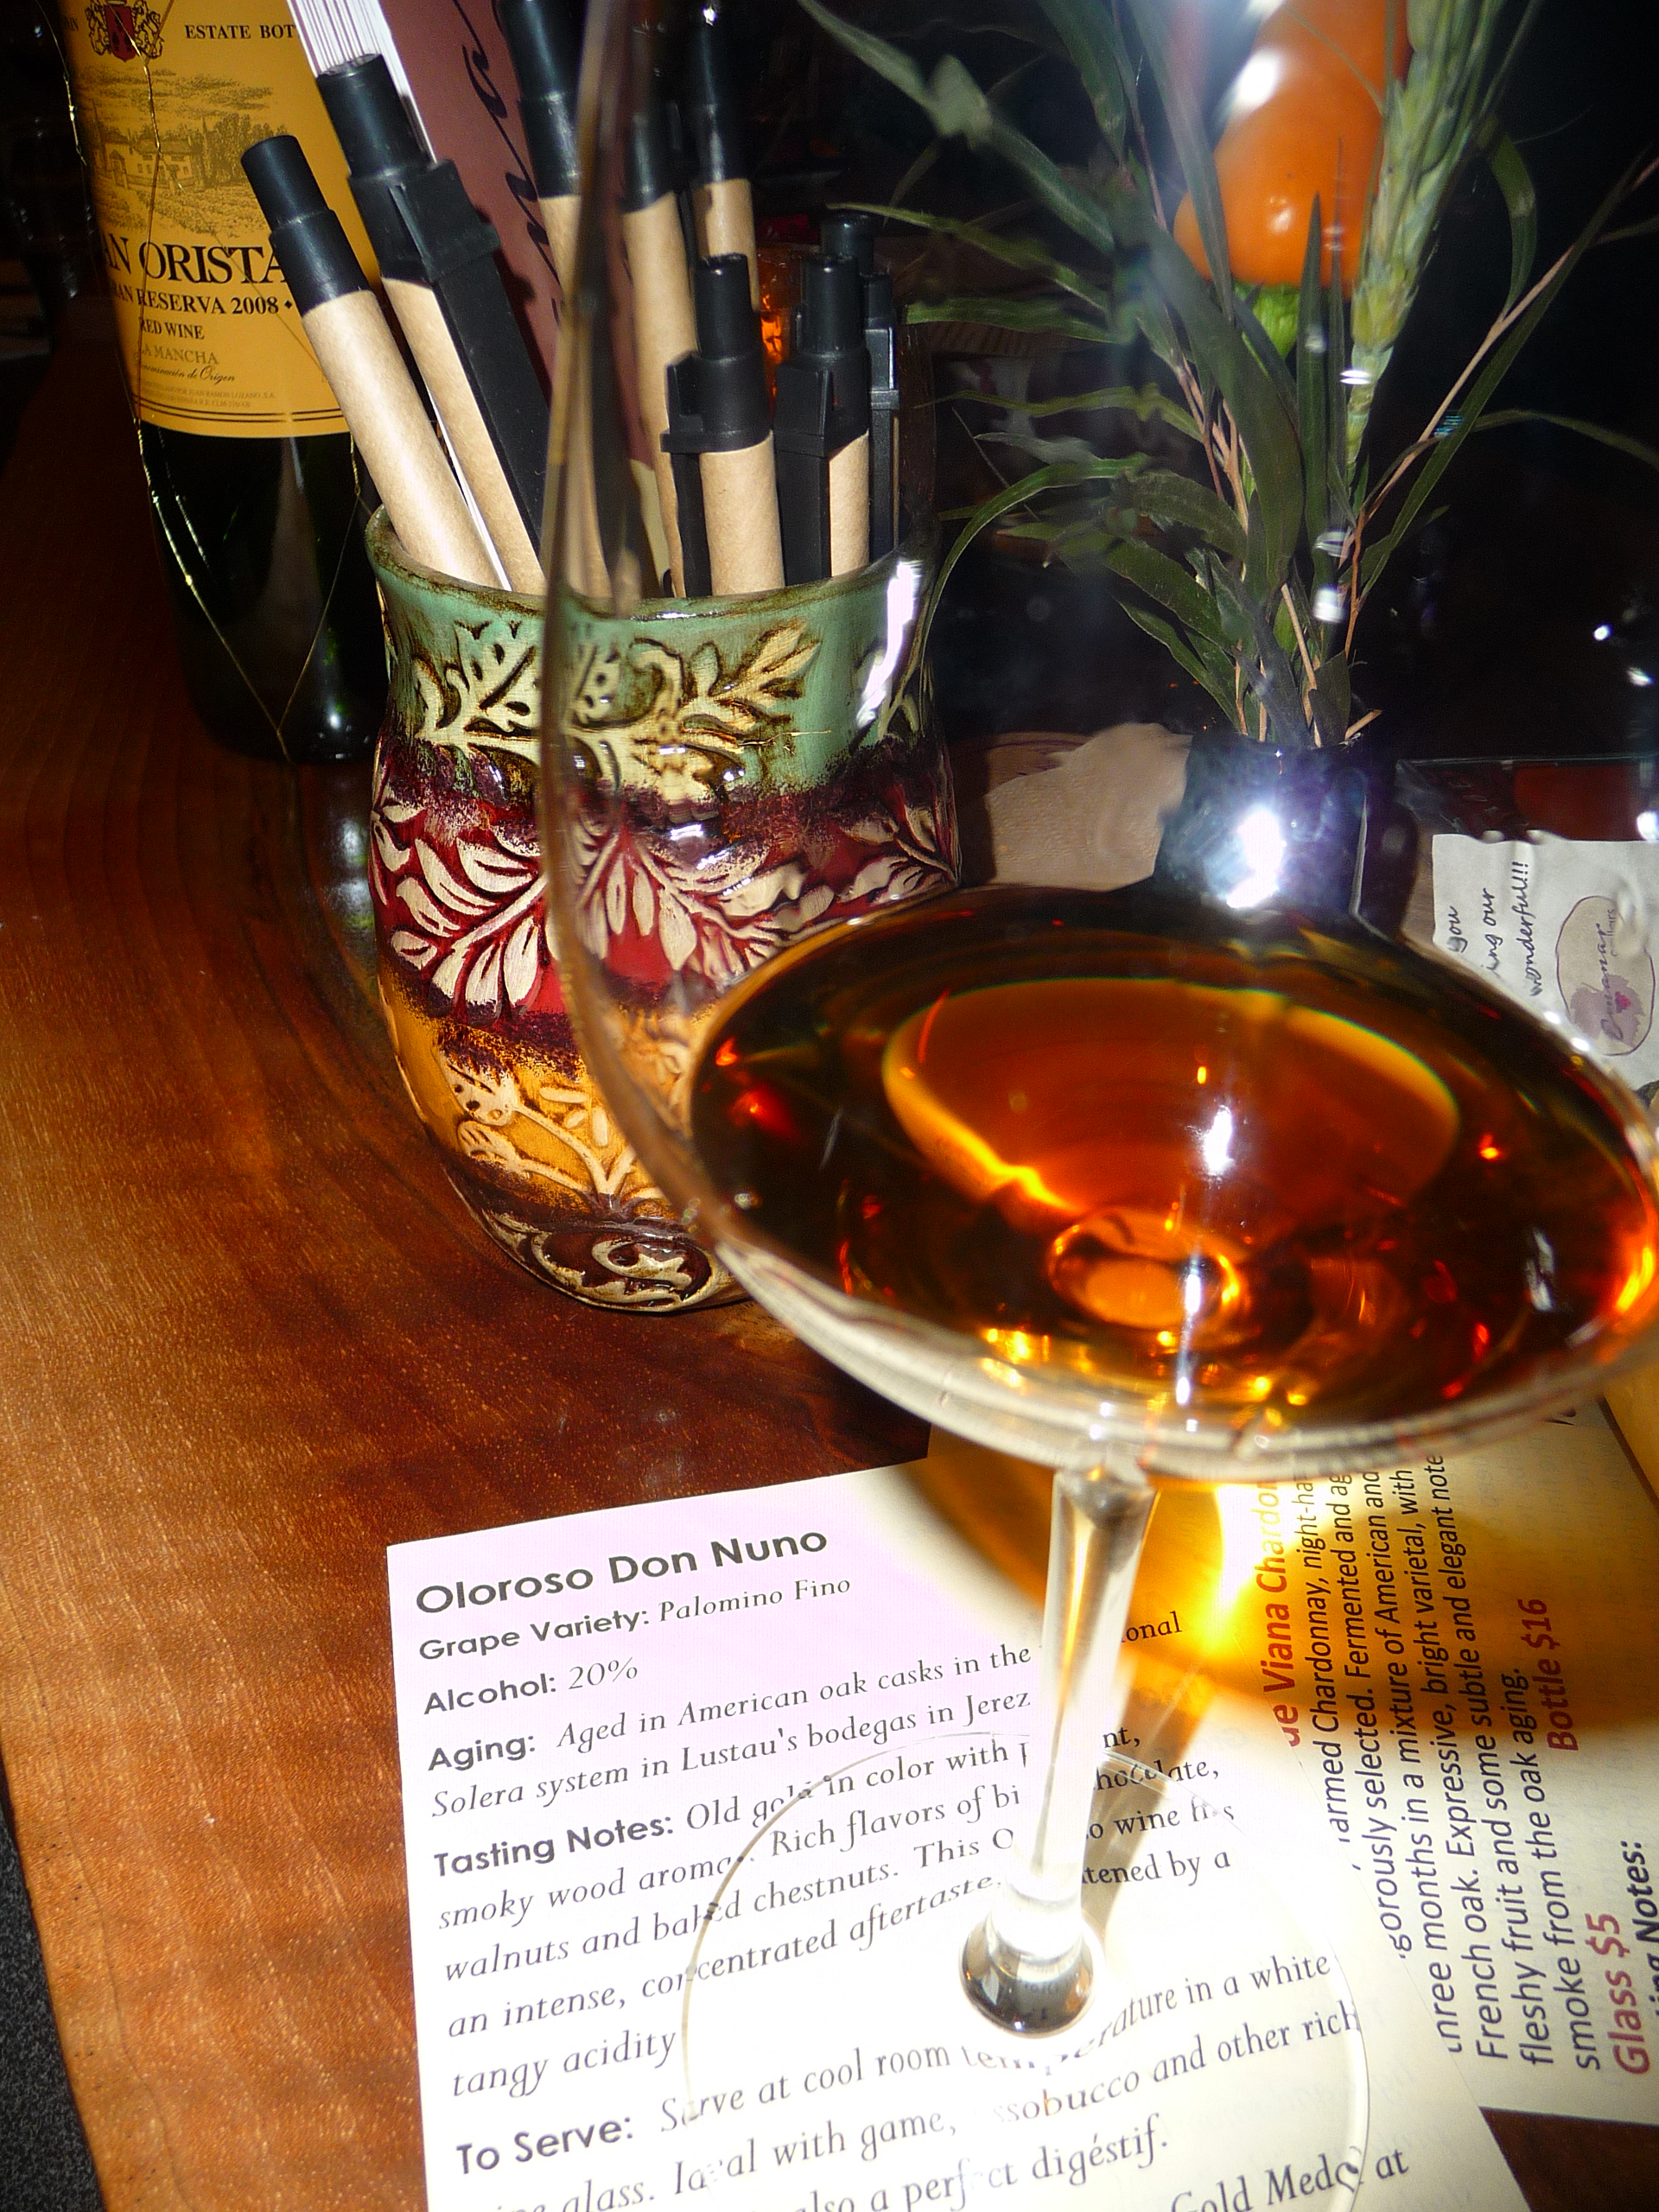 An American oak-aged Oloroso Don Nuῆo Sherry. Recommended food pairings: beef, lamb, cured meats and game